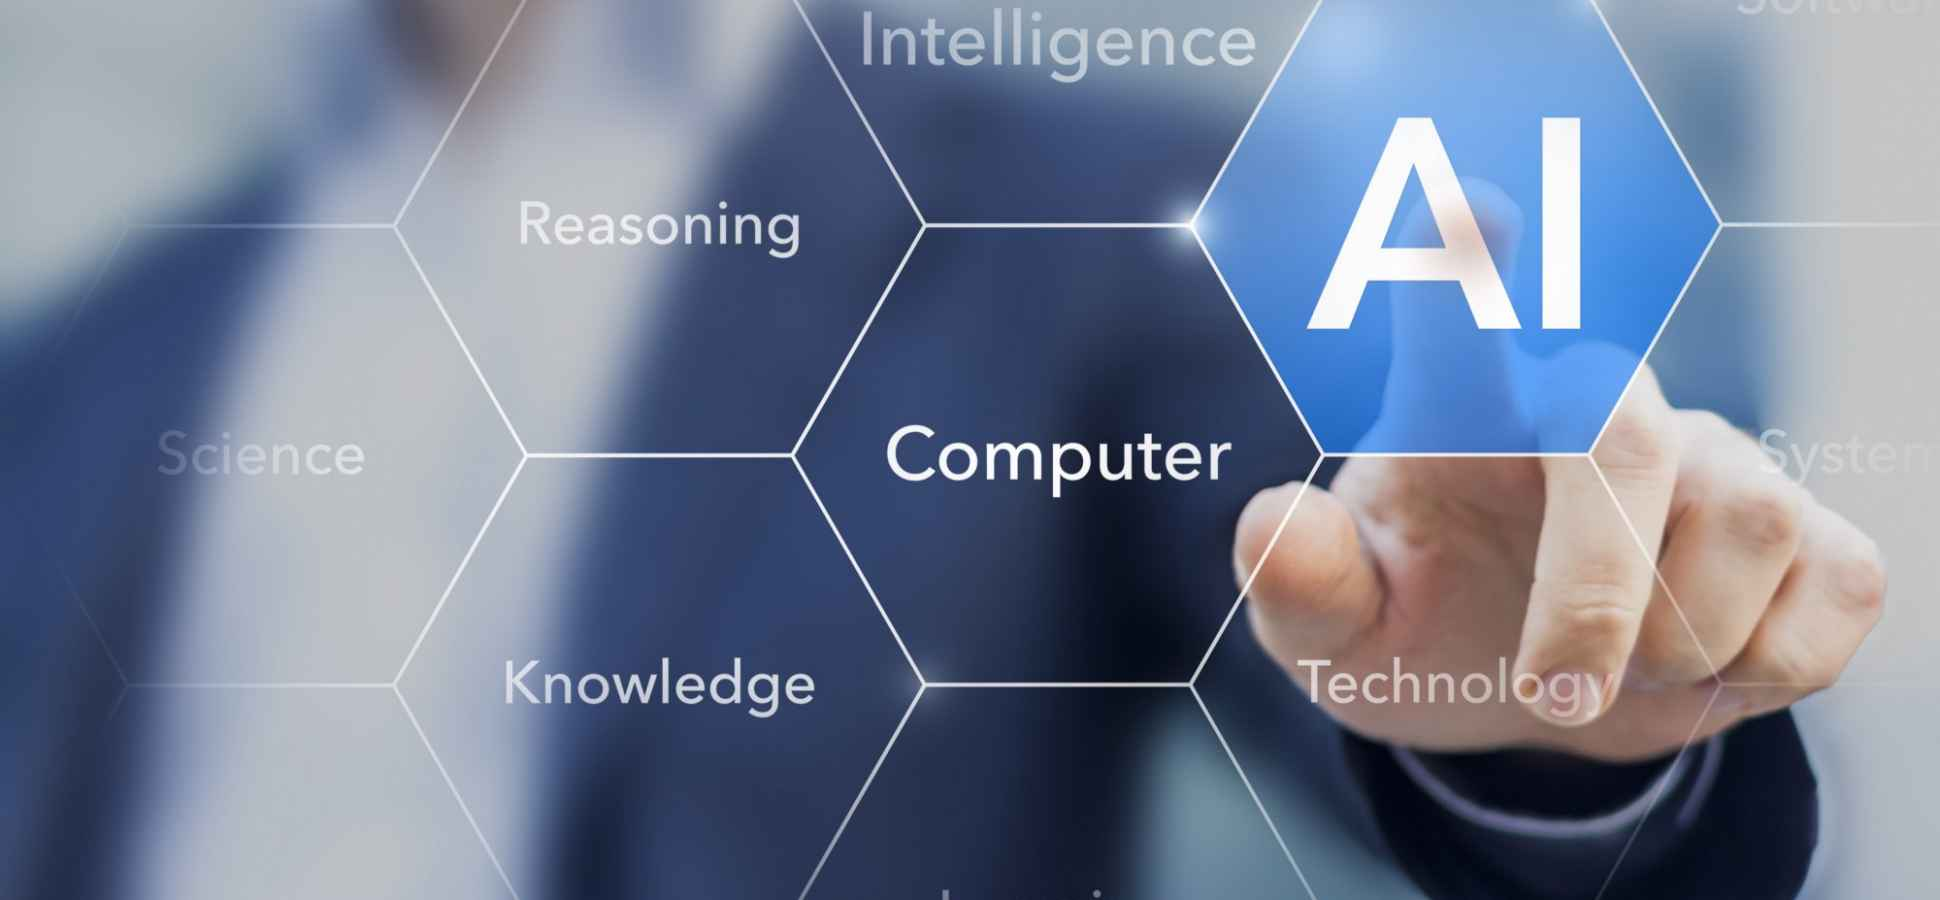 5 Growing Artificial Intelligence Startups You Need to Know About